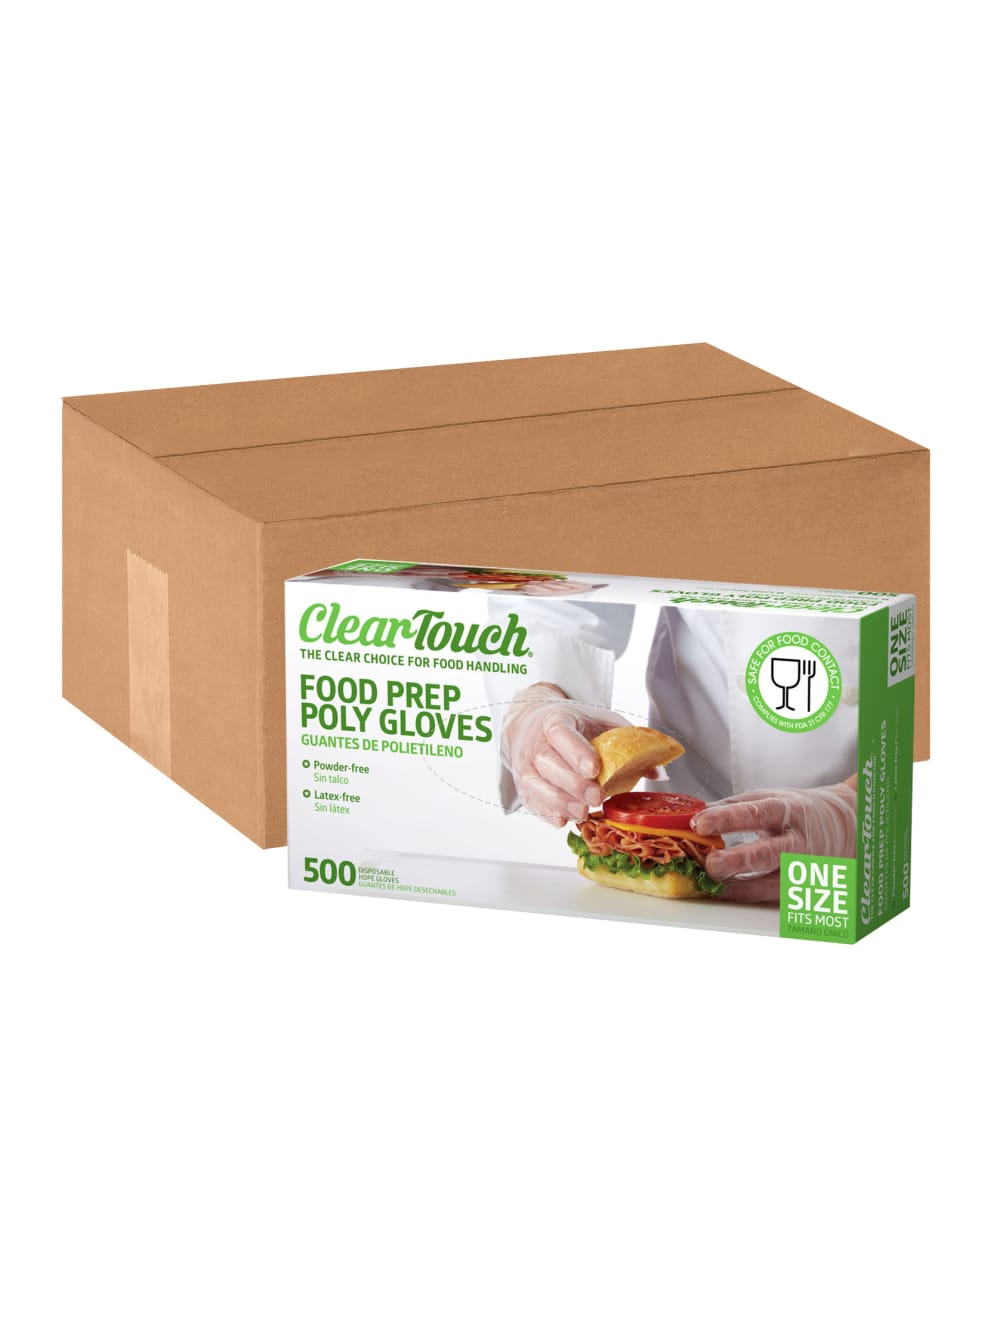 500 CLEAR TOUCH Food Prep Poly Powder Free Gloves One Size Fits Most